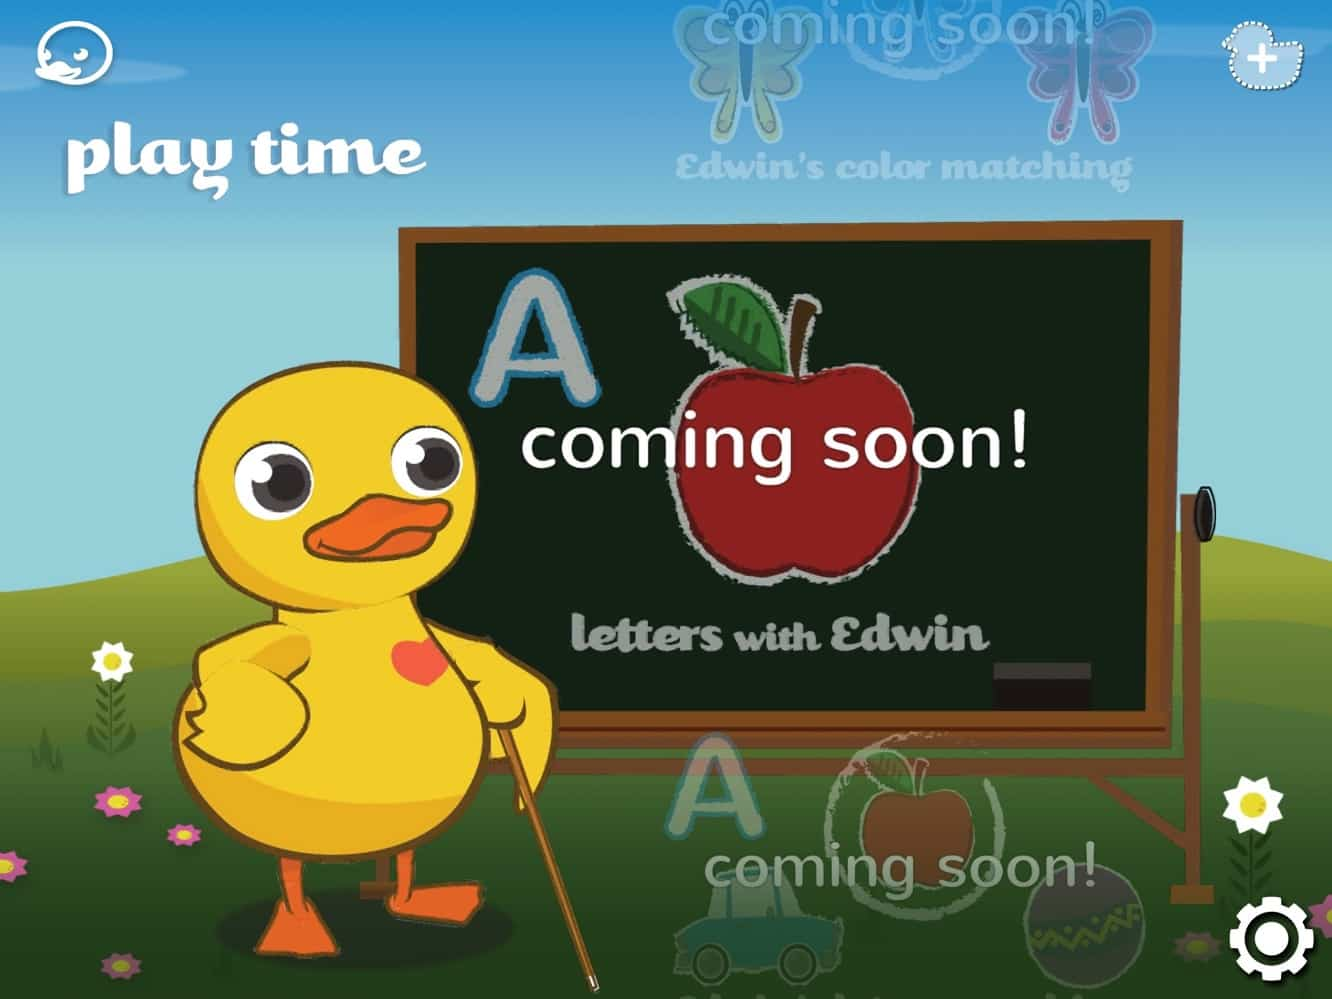 Review: Pi Lab Edwin the Duck